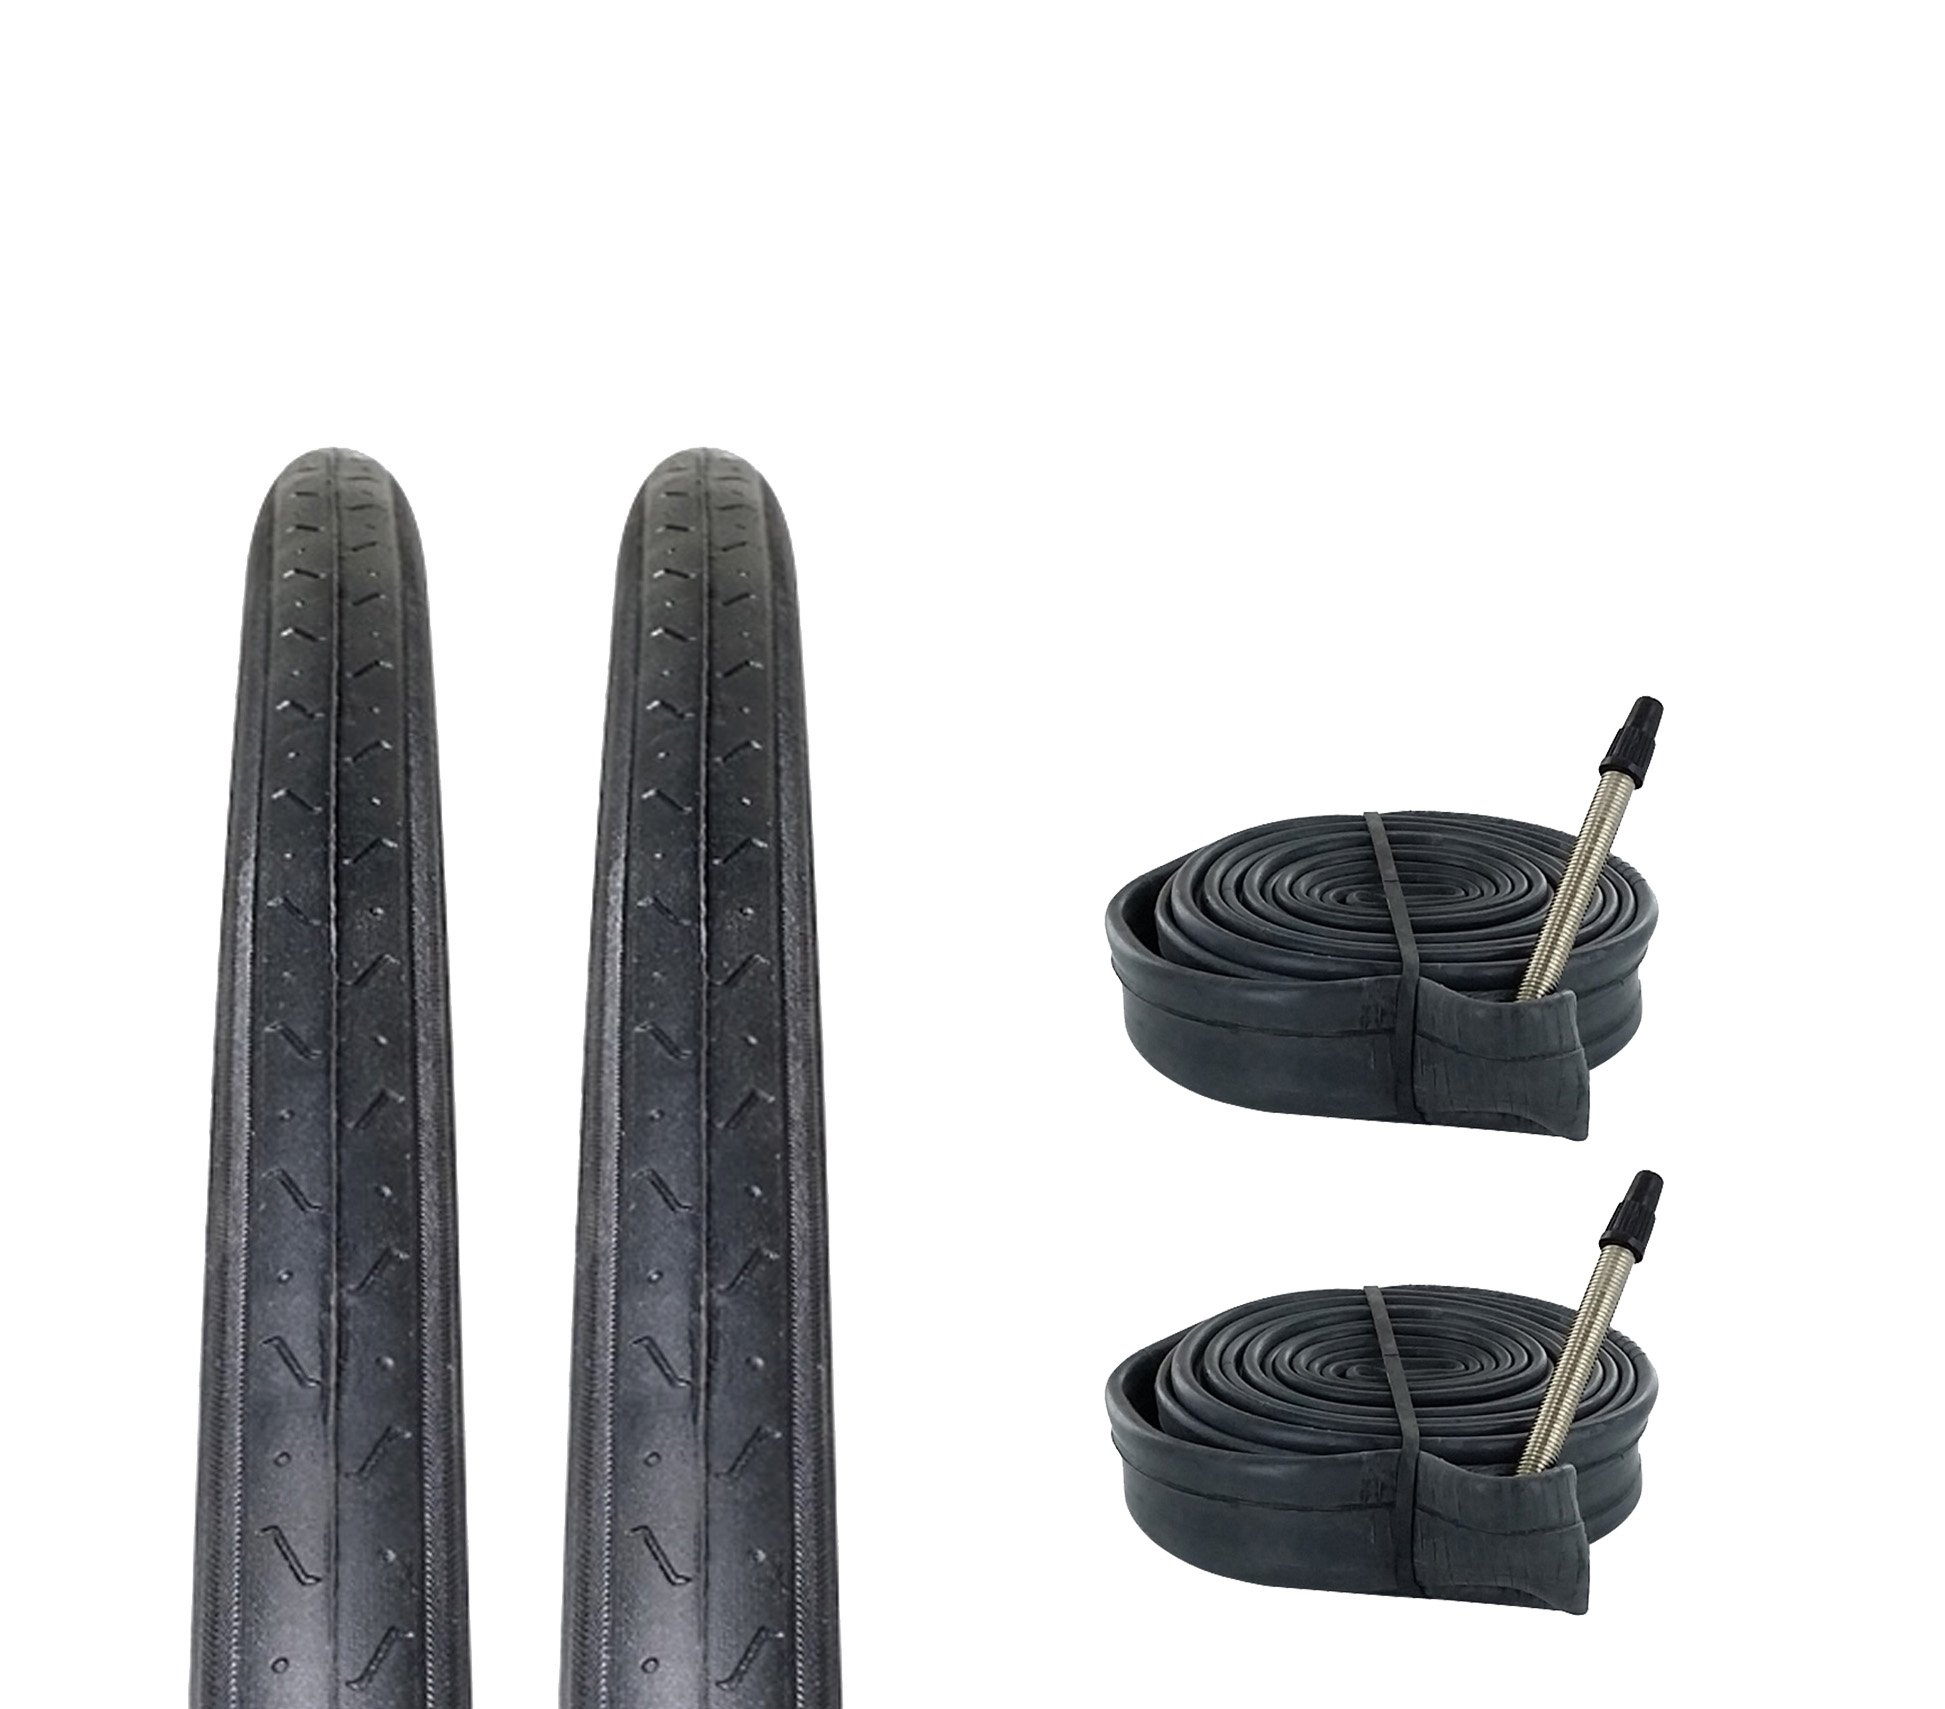 Zol Bundle 2 Pack Z1179 Road Tires and Tube 700x23C, Presta/French 60 MM Valve by Zol